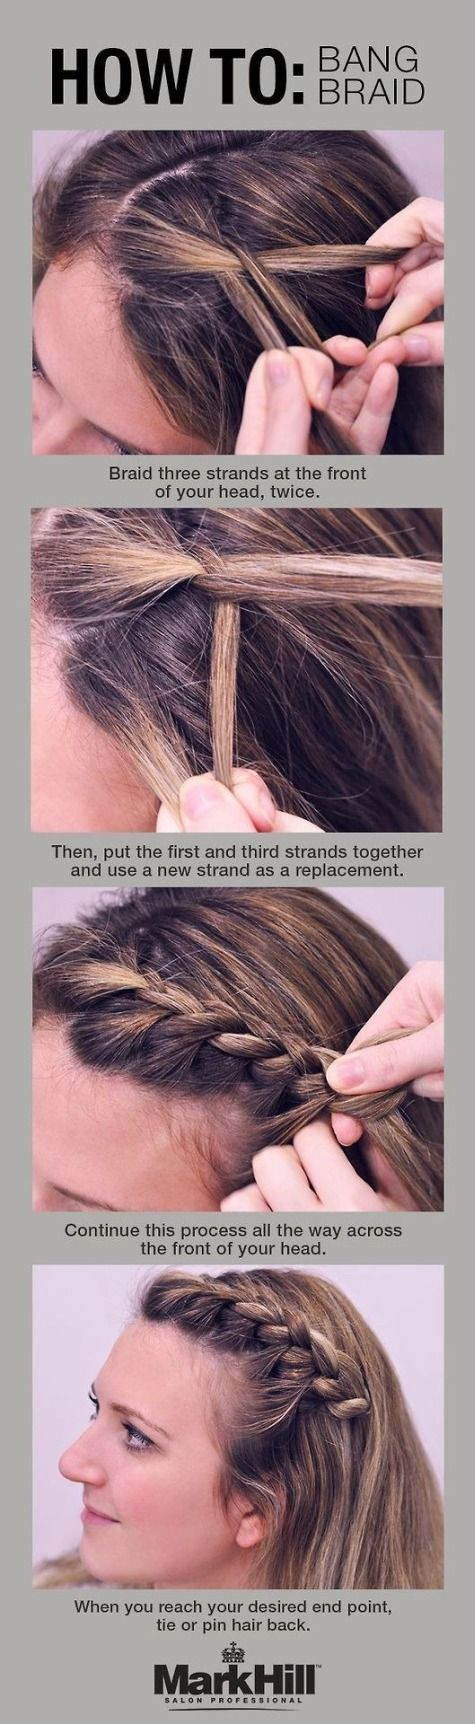 10 great hair hacks for the gym. www.lab333.com https://www.facebook.com/pages/LAB-STYLE/585086788169863 http://www.labs333style.com www.lablikes.tumblr.com www.pinterest.com/labstyle